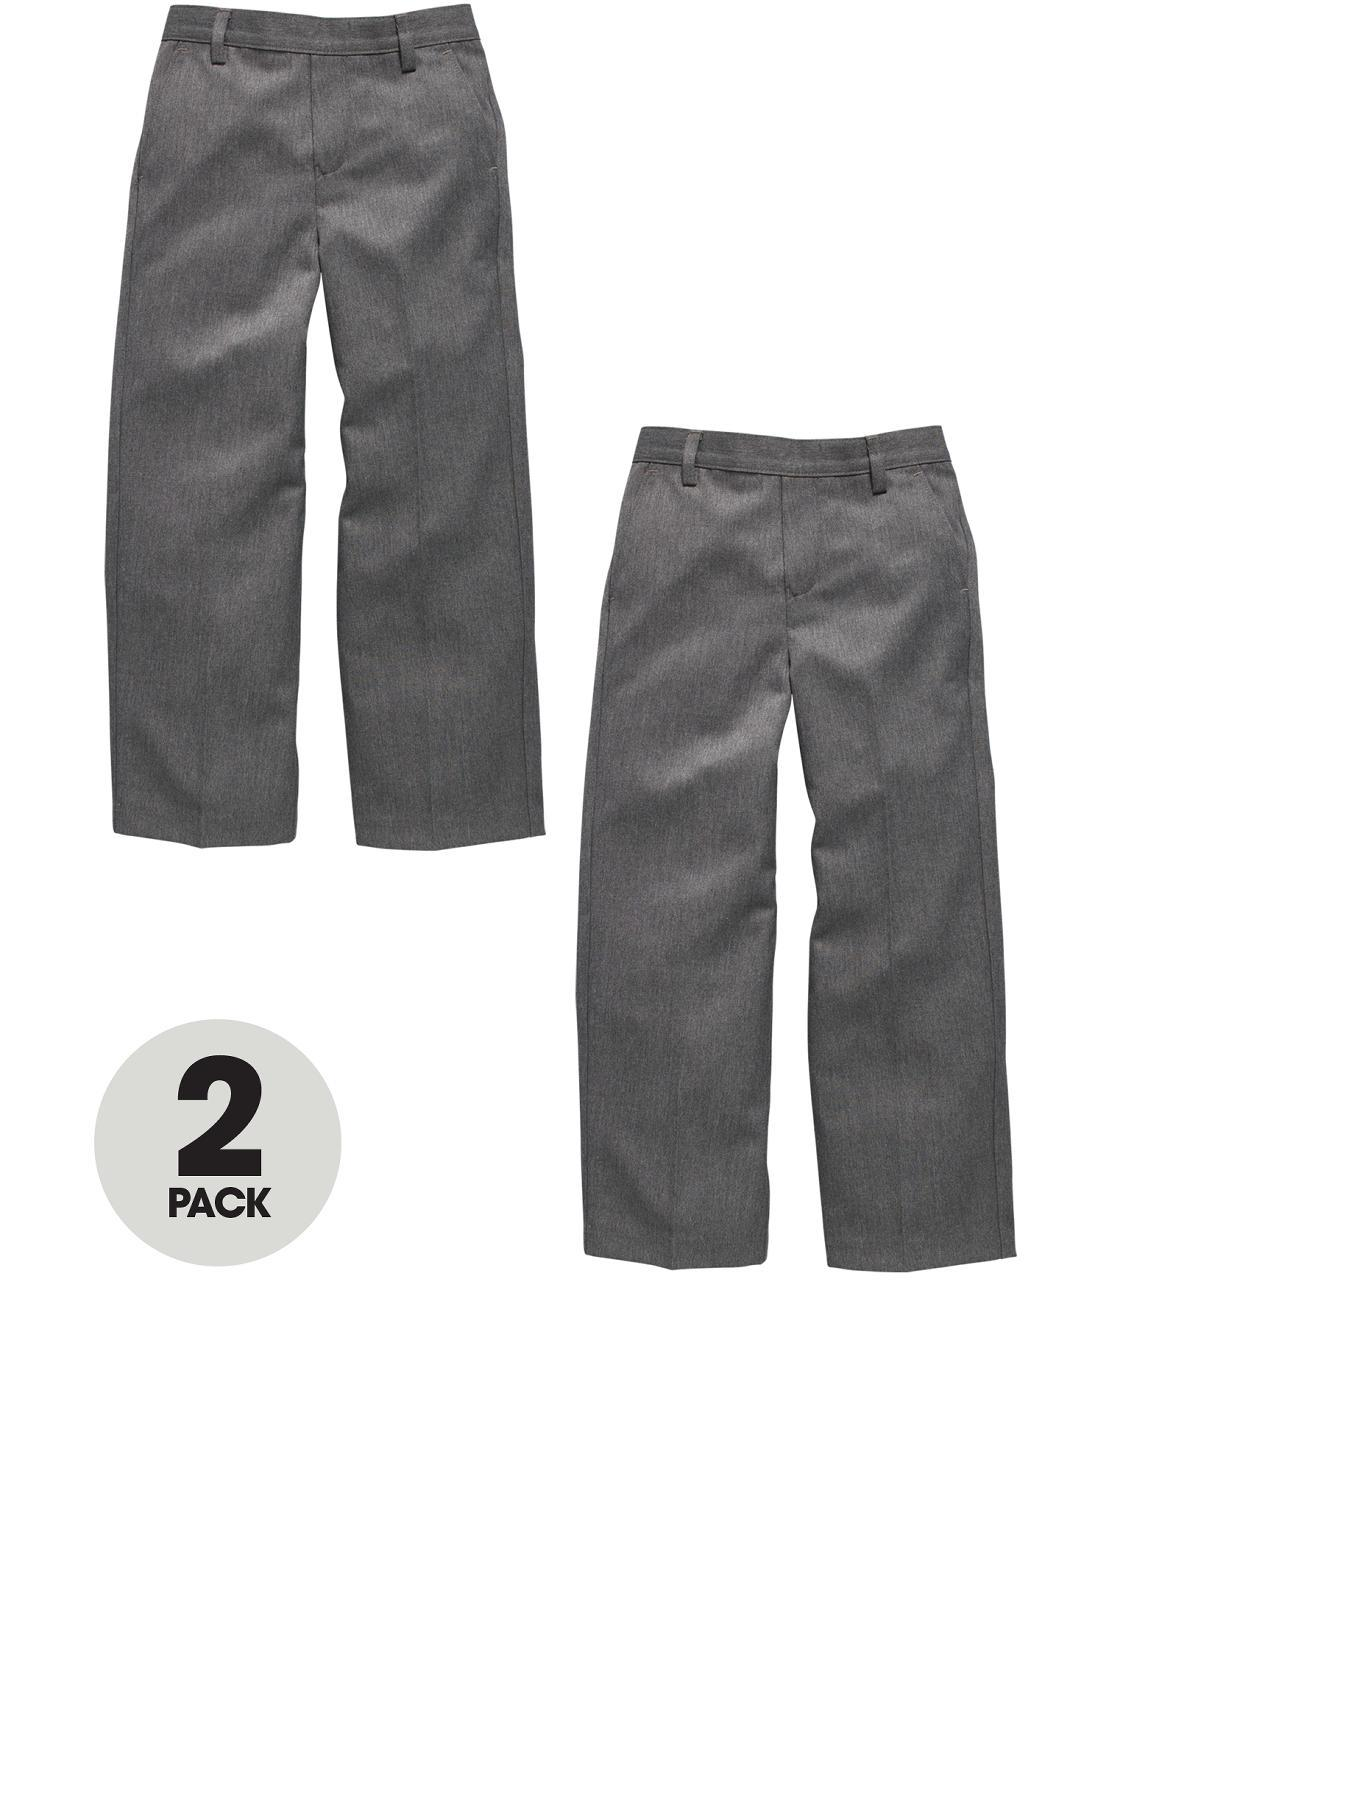 Boys Pull On School Trousers (2 Pack), Grey,Navy,Black at Littlewoods